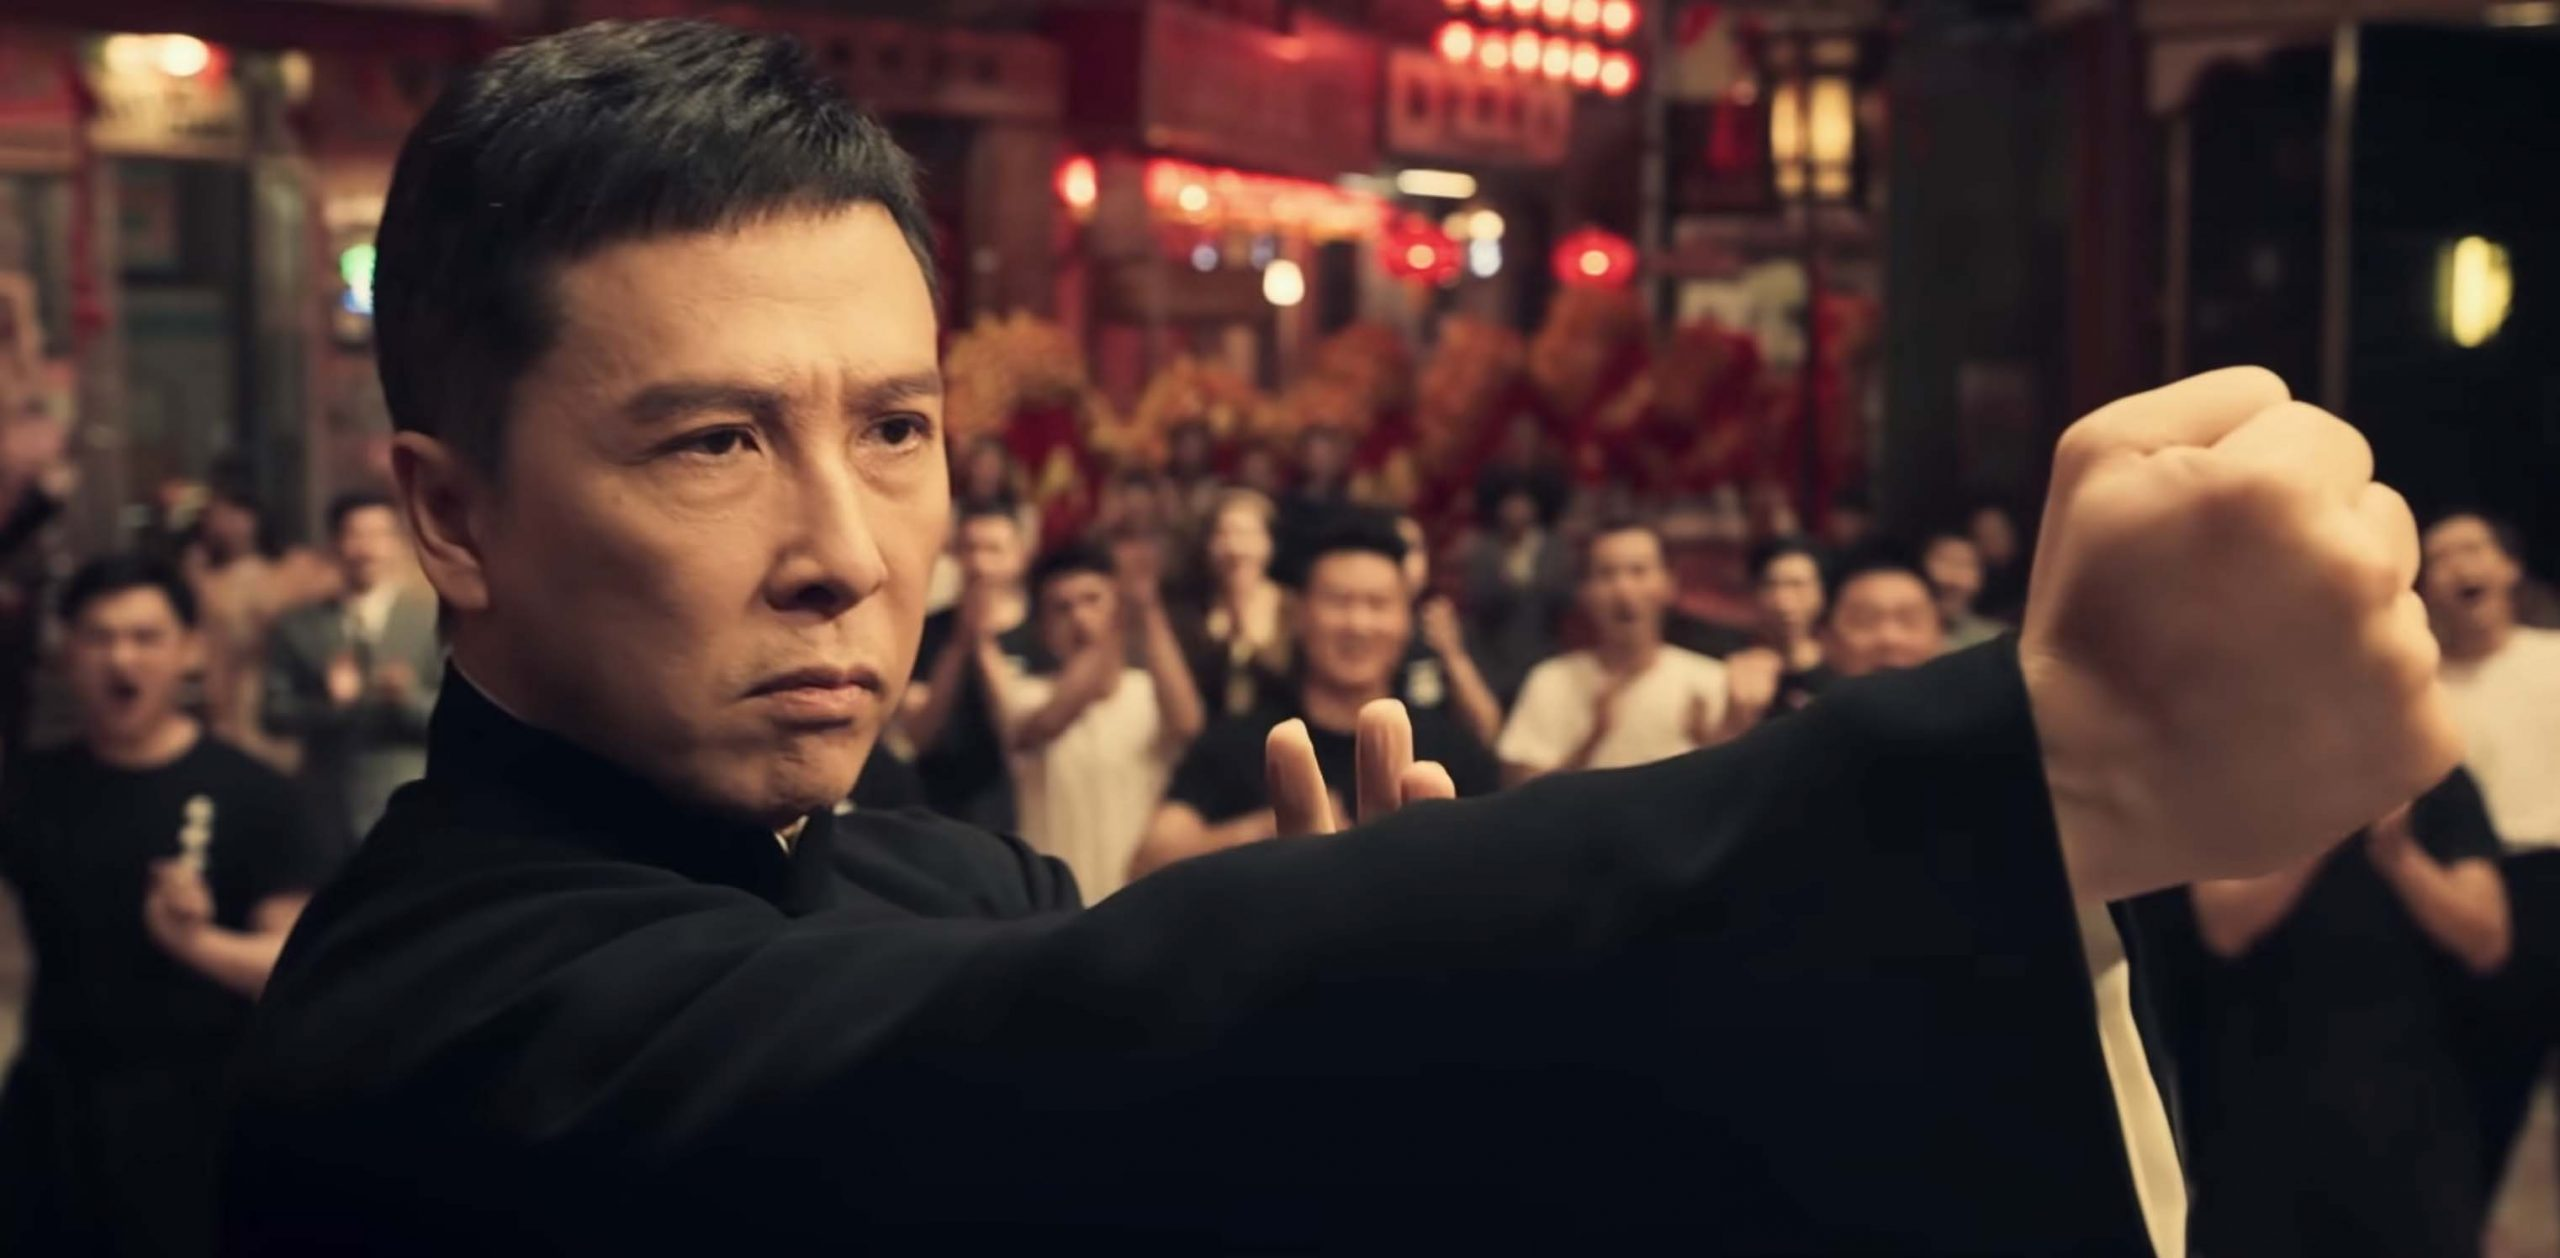 Ip Man 4 The FInal film review post image controller companies